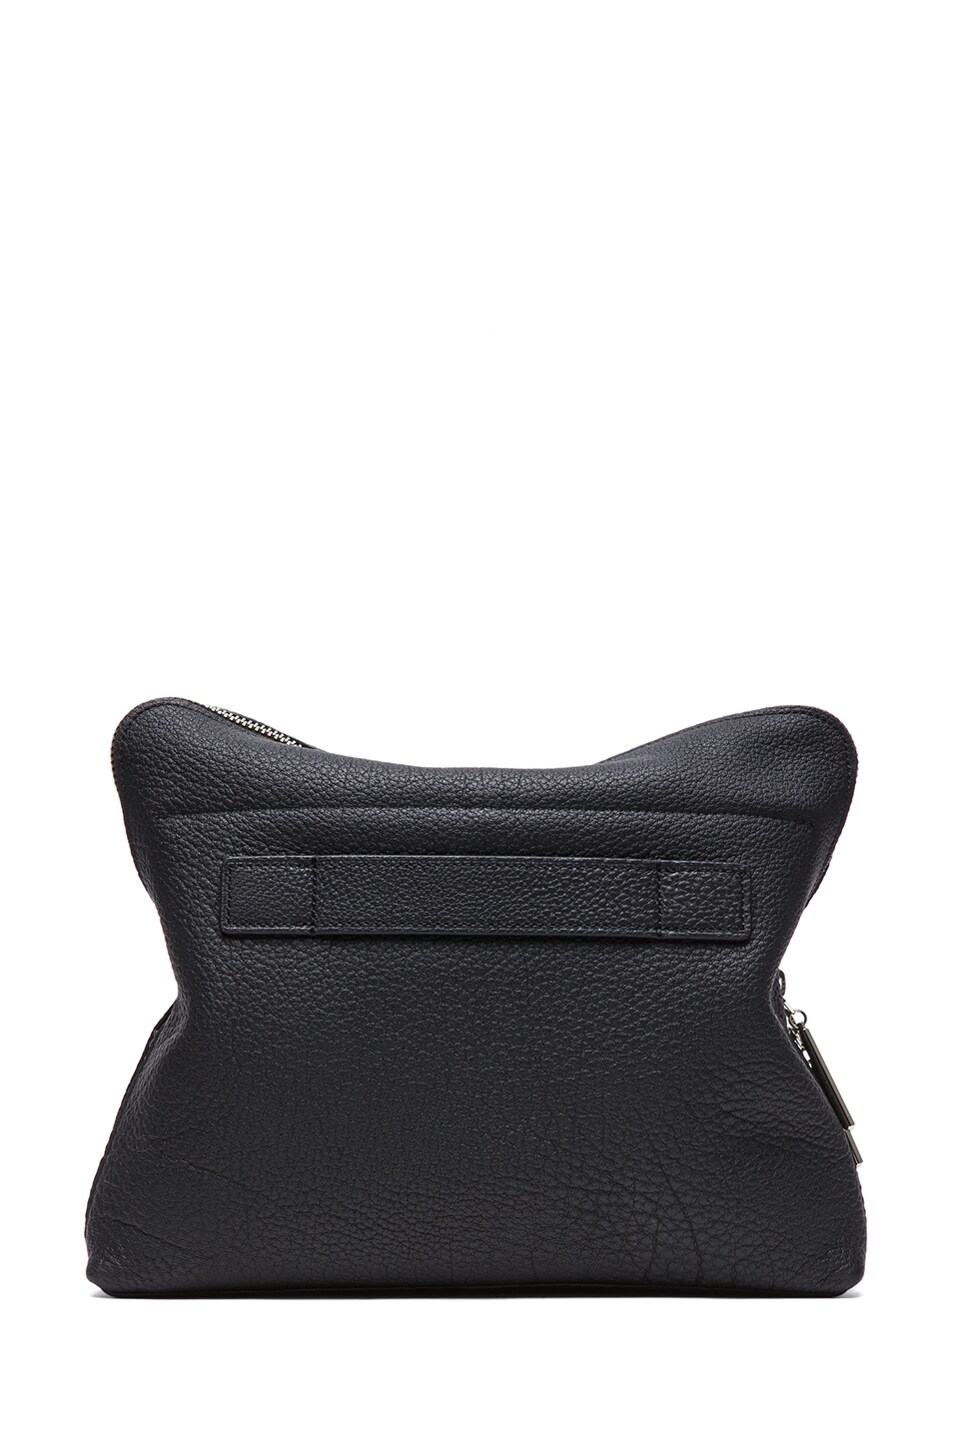 Image 2 of 3.1 phillip lim Medium 31 Minute Bag in Black